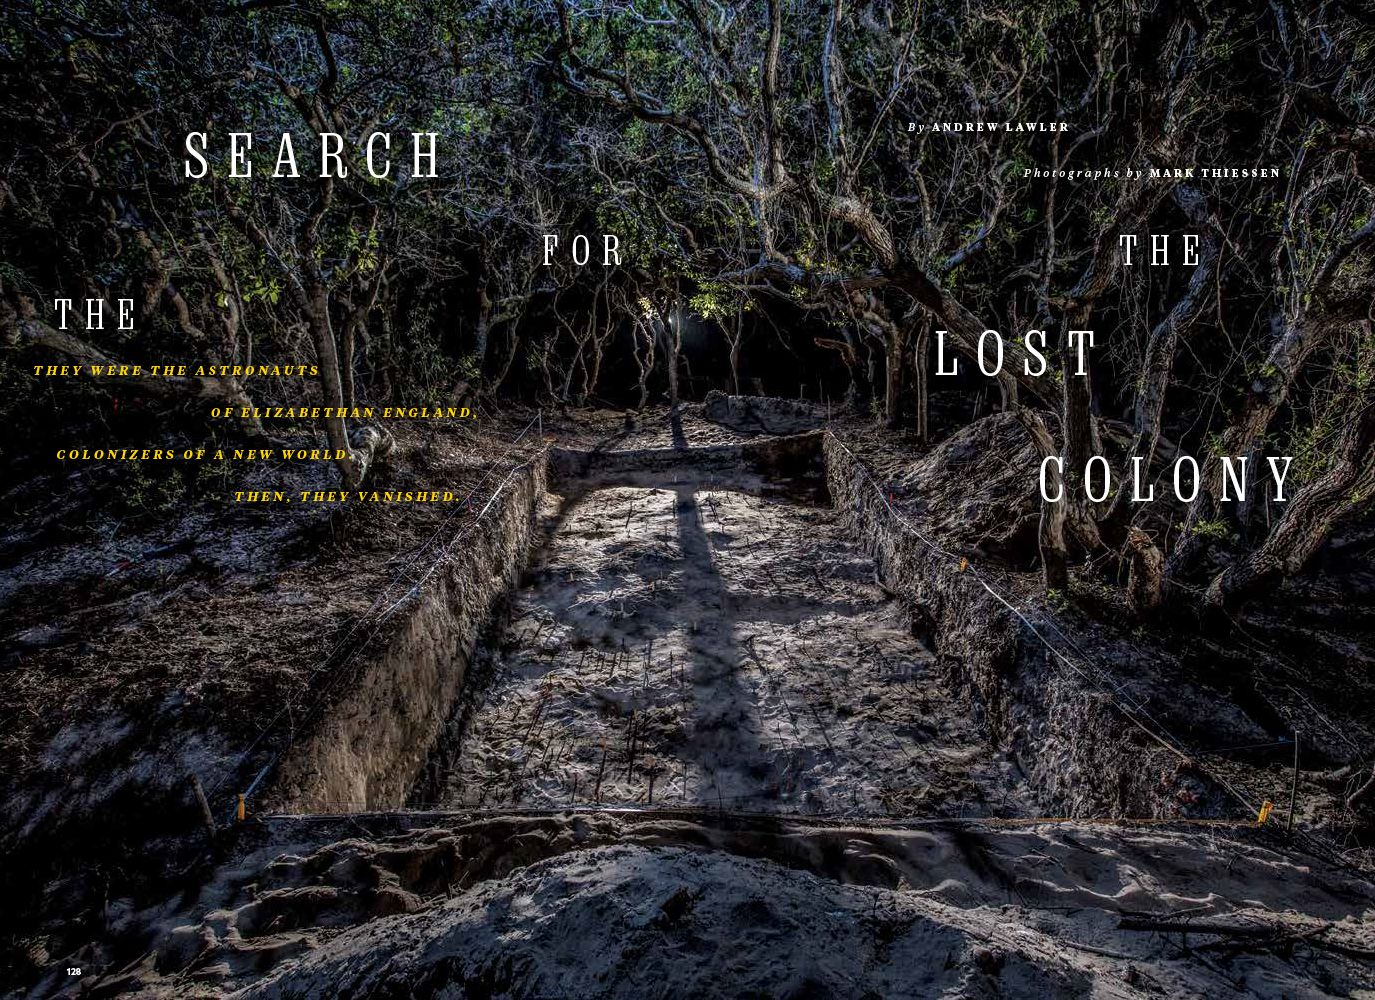 The Search for the Lost Colony